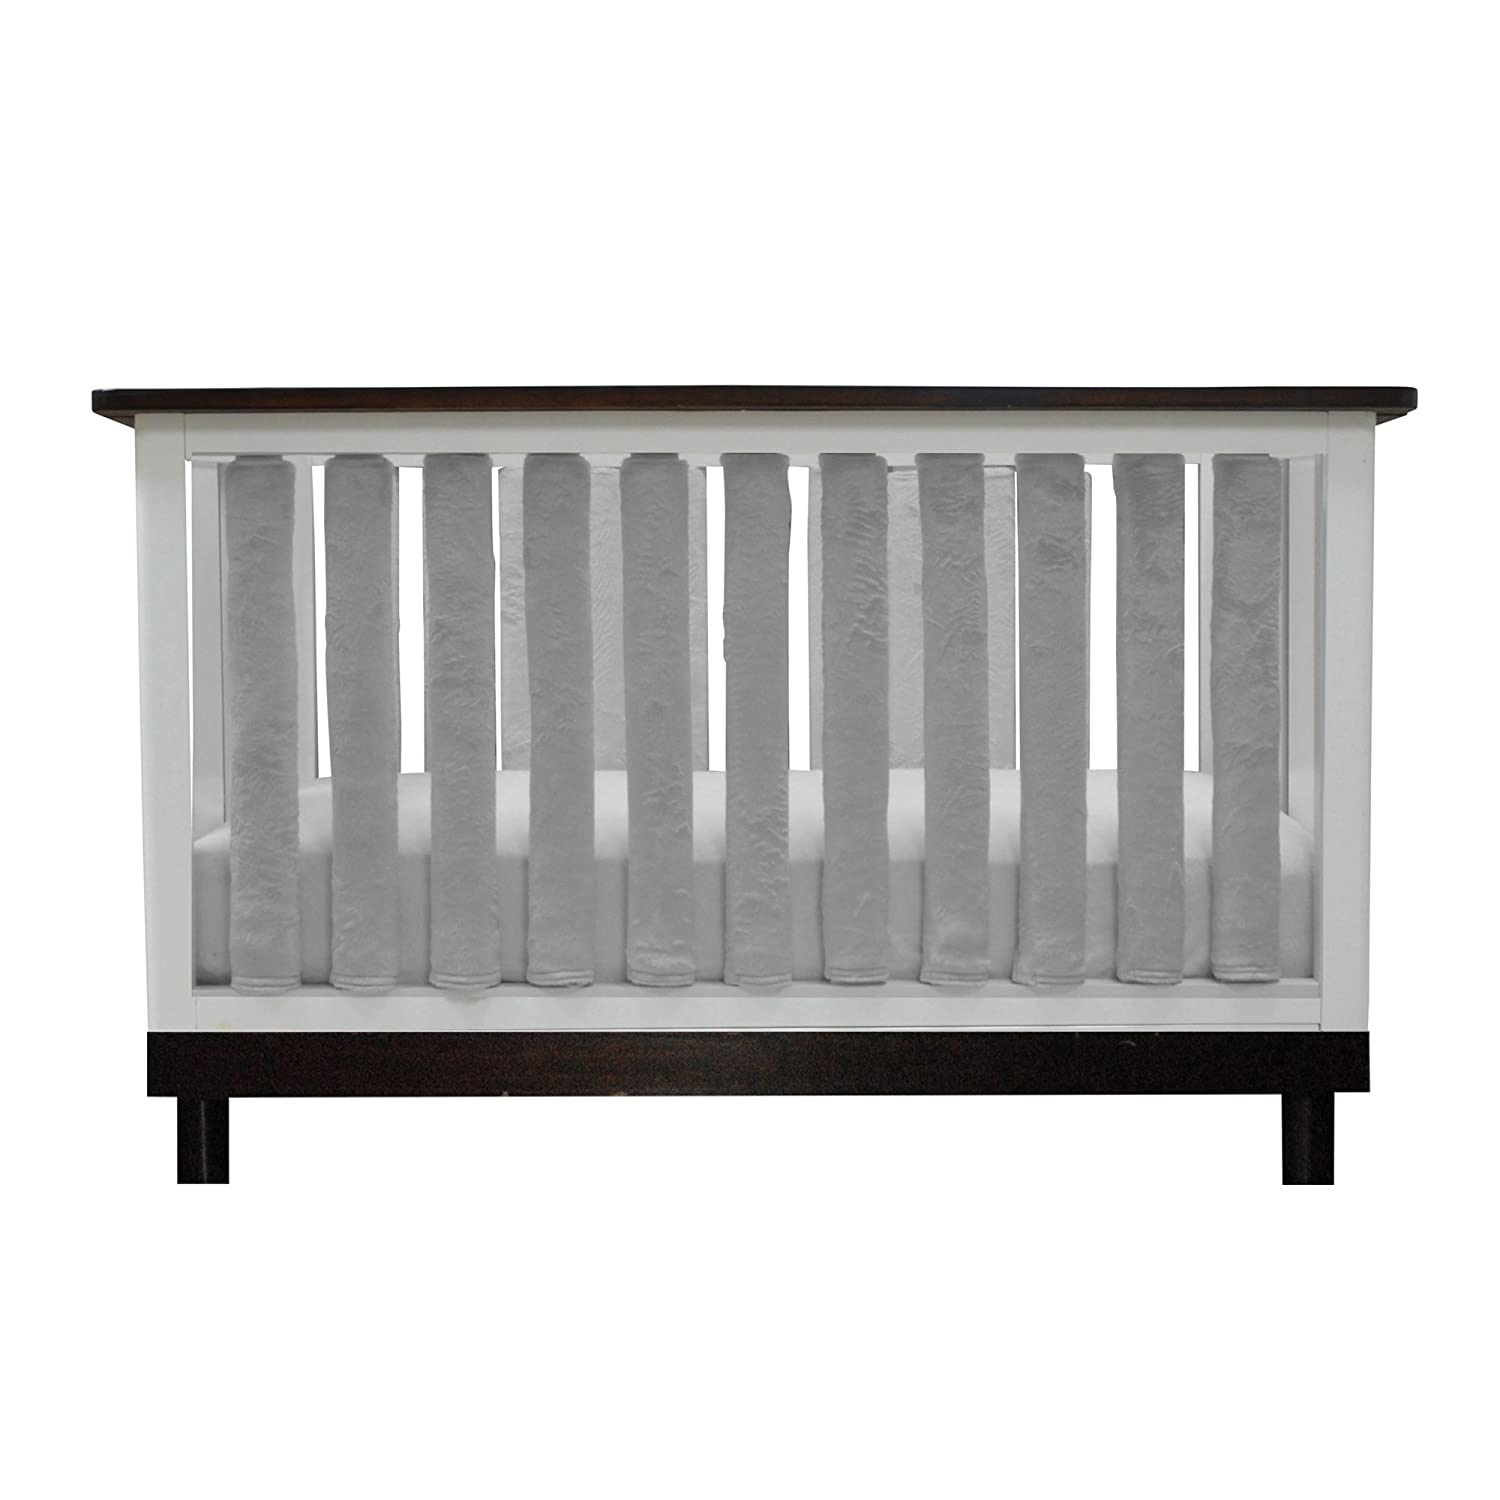 PURE SAFETY Vertical Crib Liners 38 Pack in Luxurious Grey Minky Go Mama Go Designs